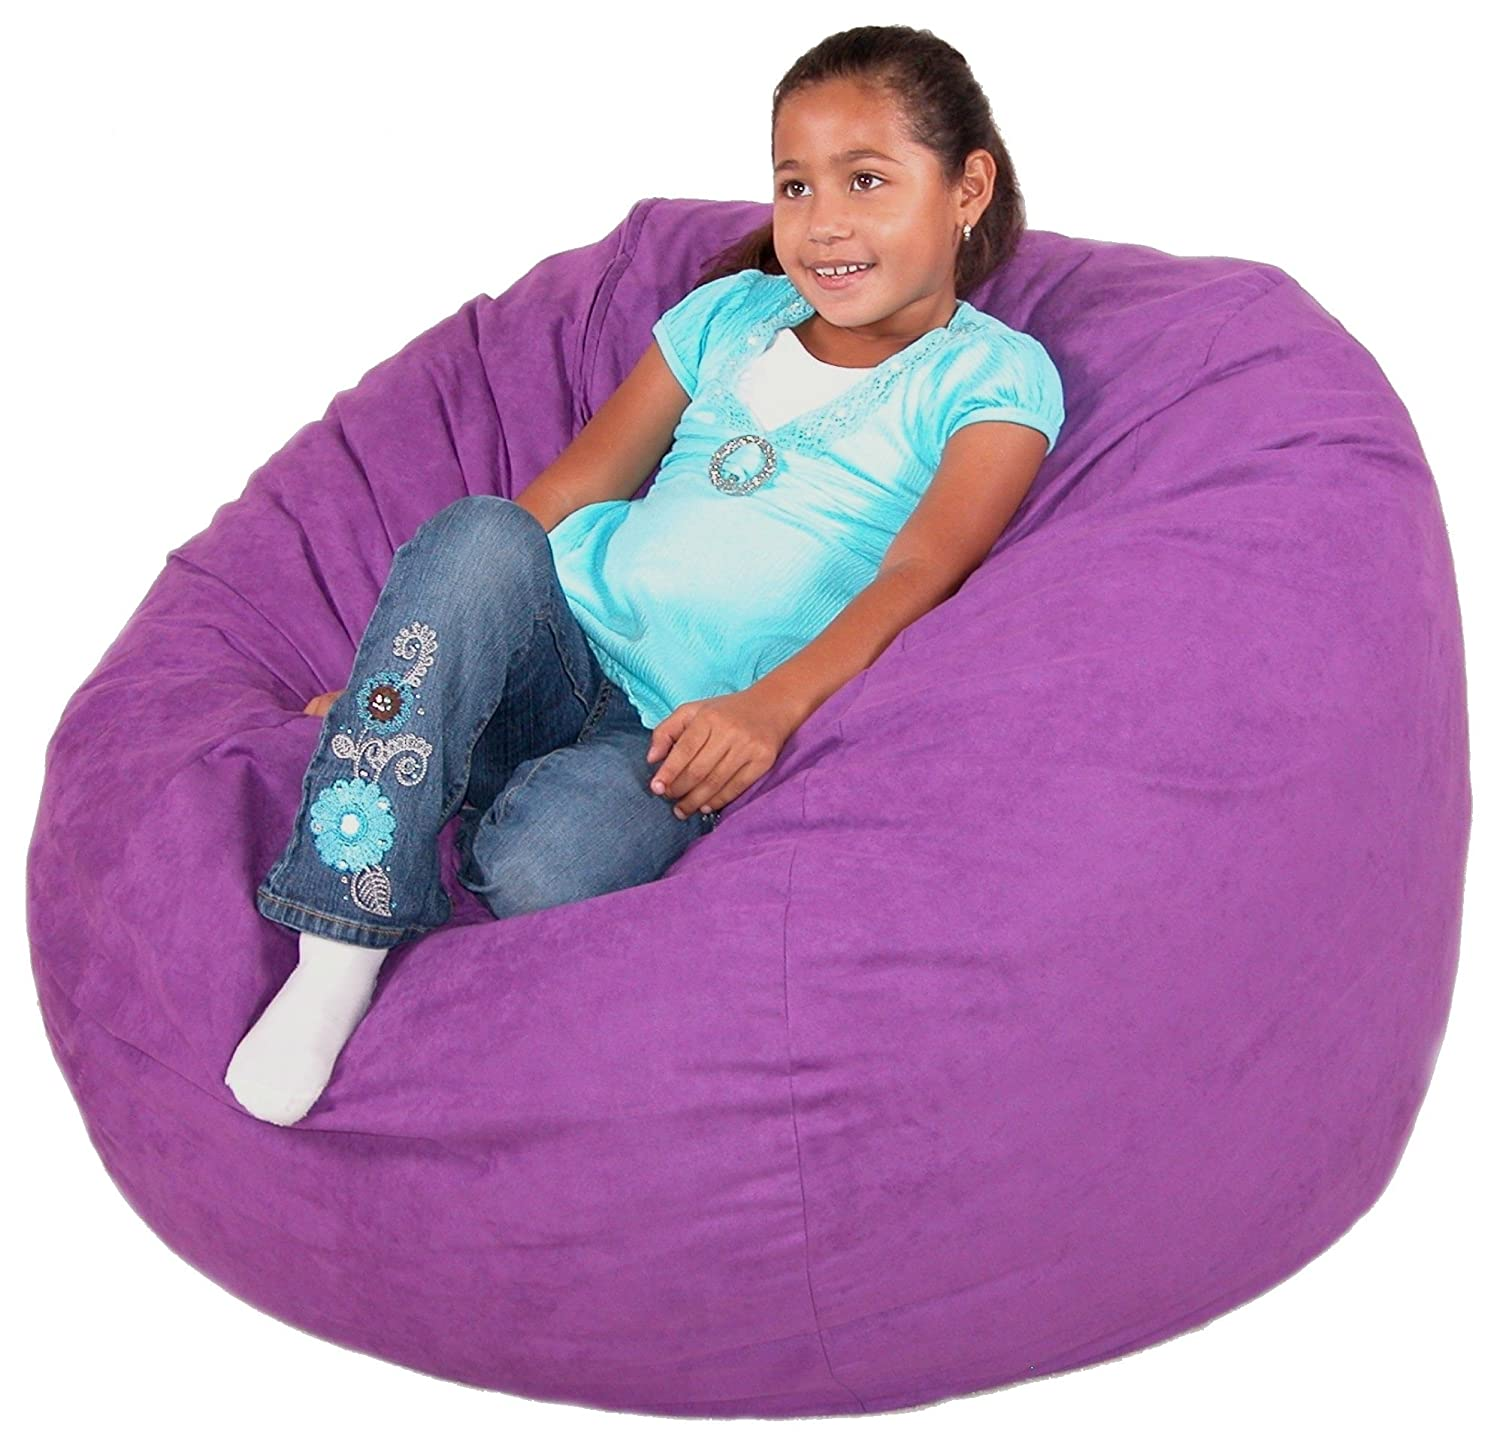 Beautiful Amazon.com: Cozy Sack 3 Feet Bean Bag Chair, Medium, Purple: Kitchen U0026  Dining